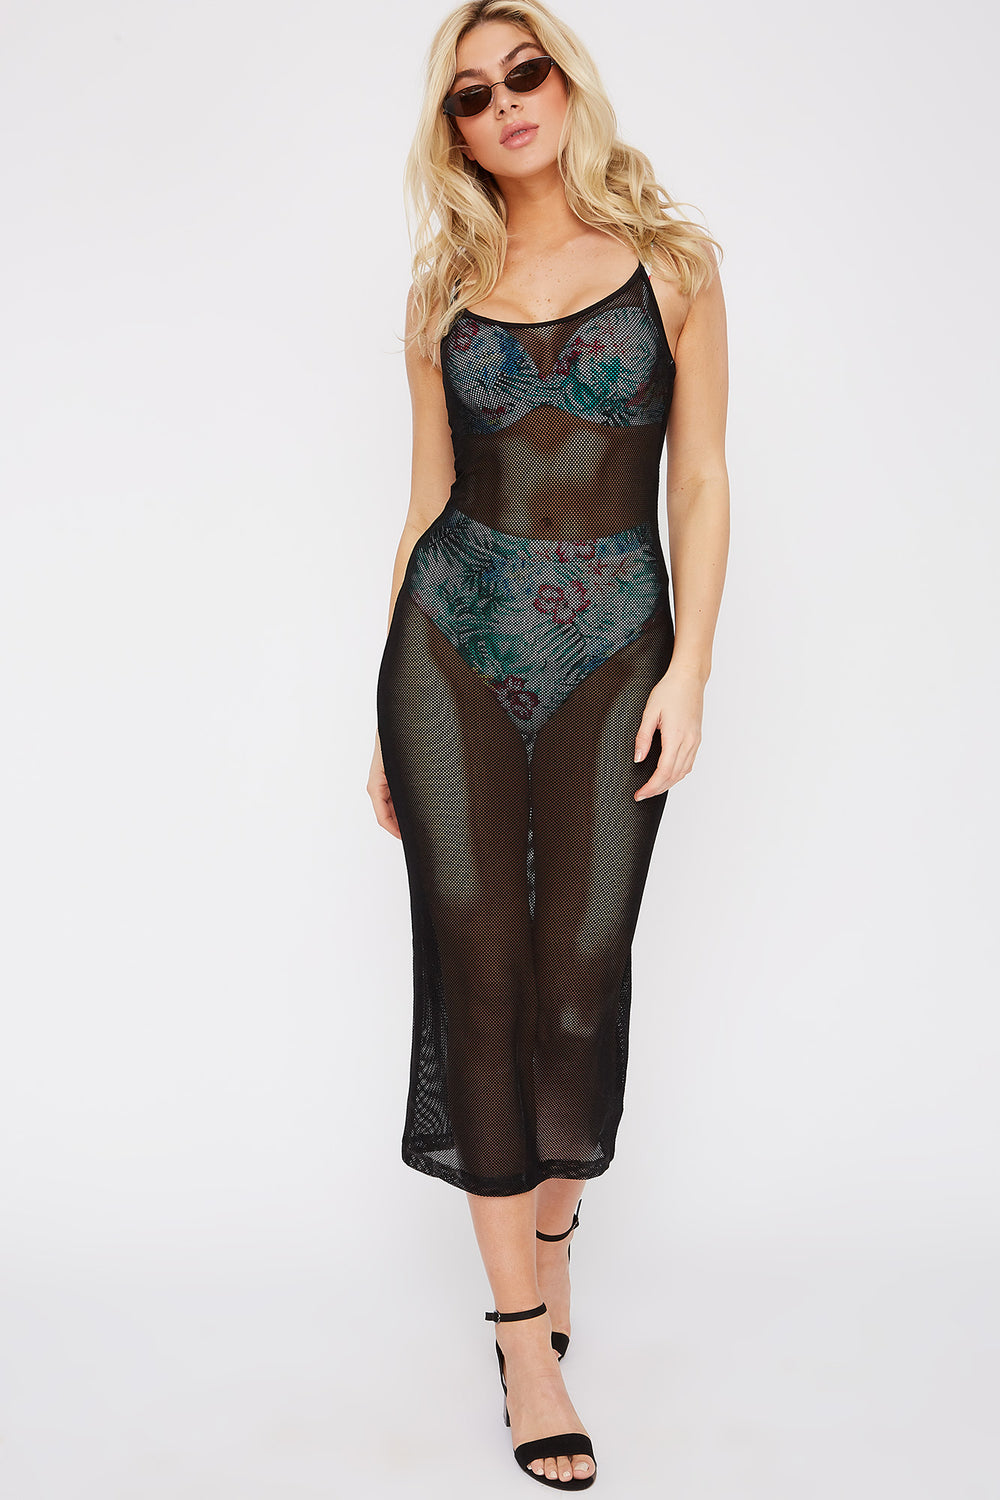 Sommer Ray Net Cover Up Dress Black